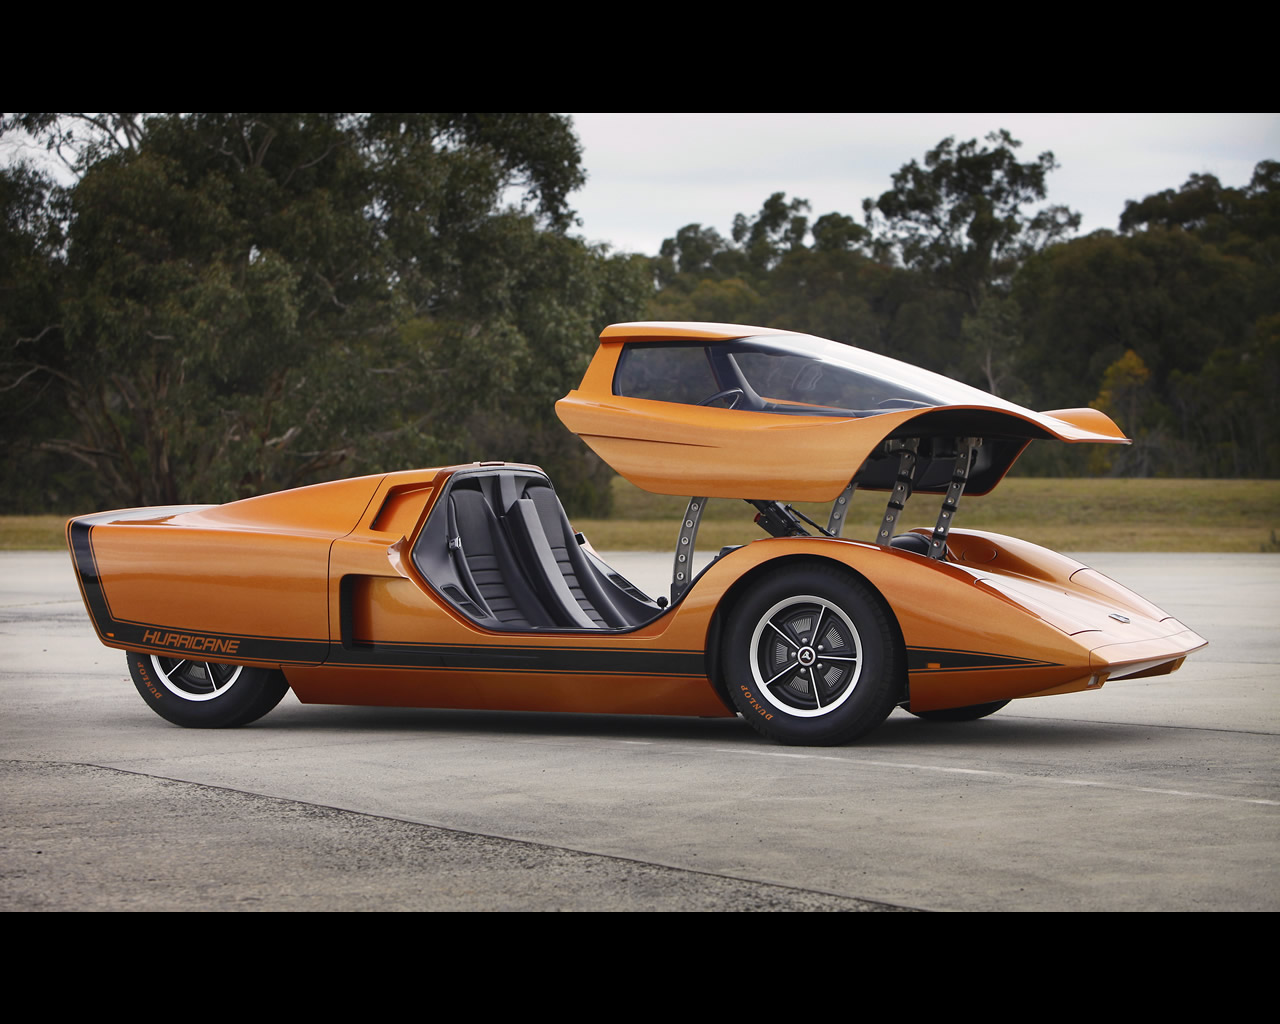 holden hurricane concept car 1969